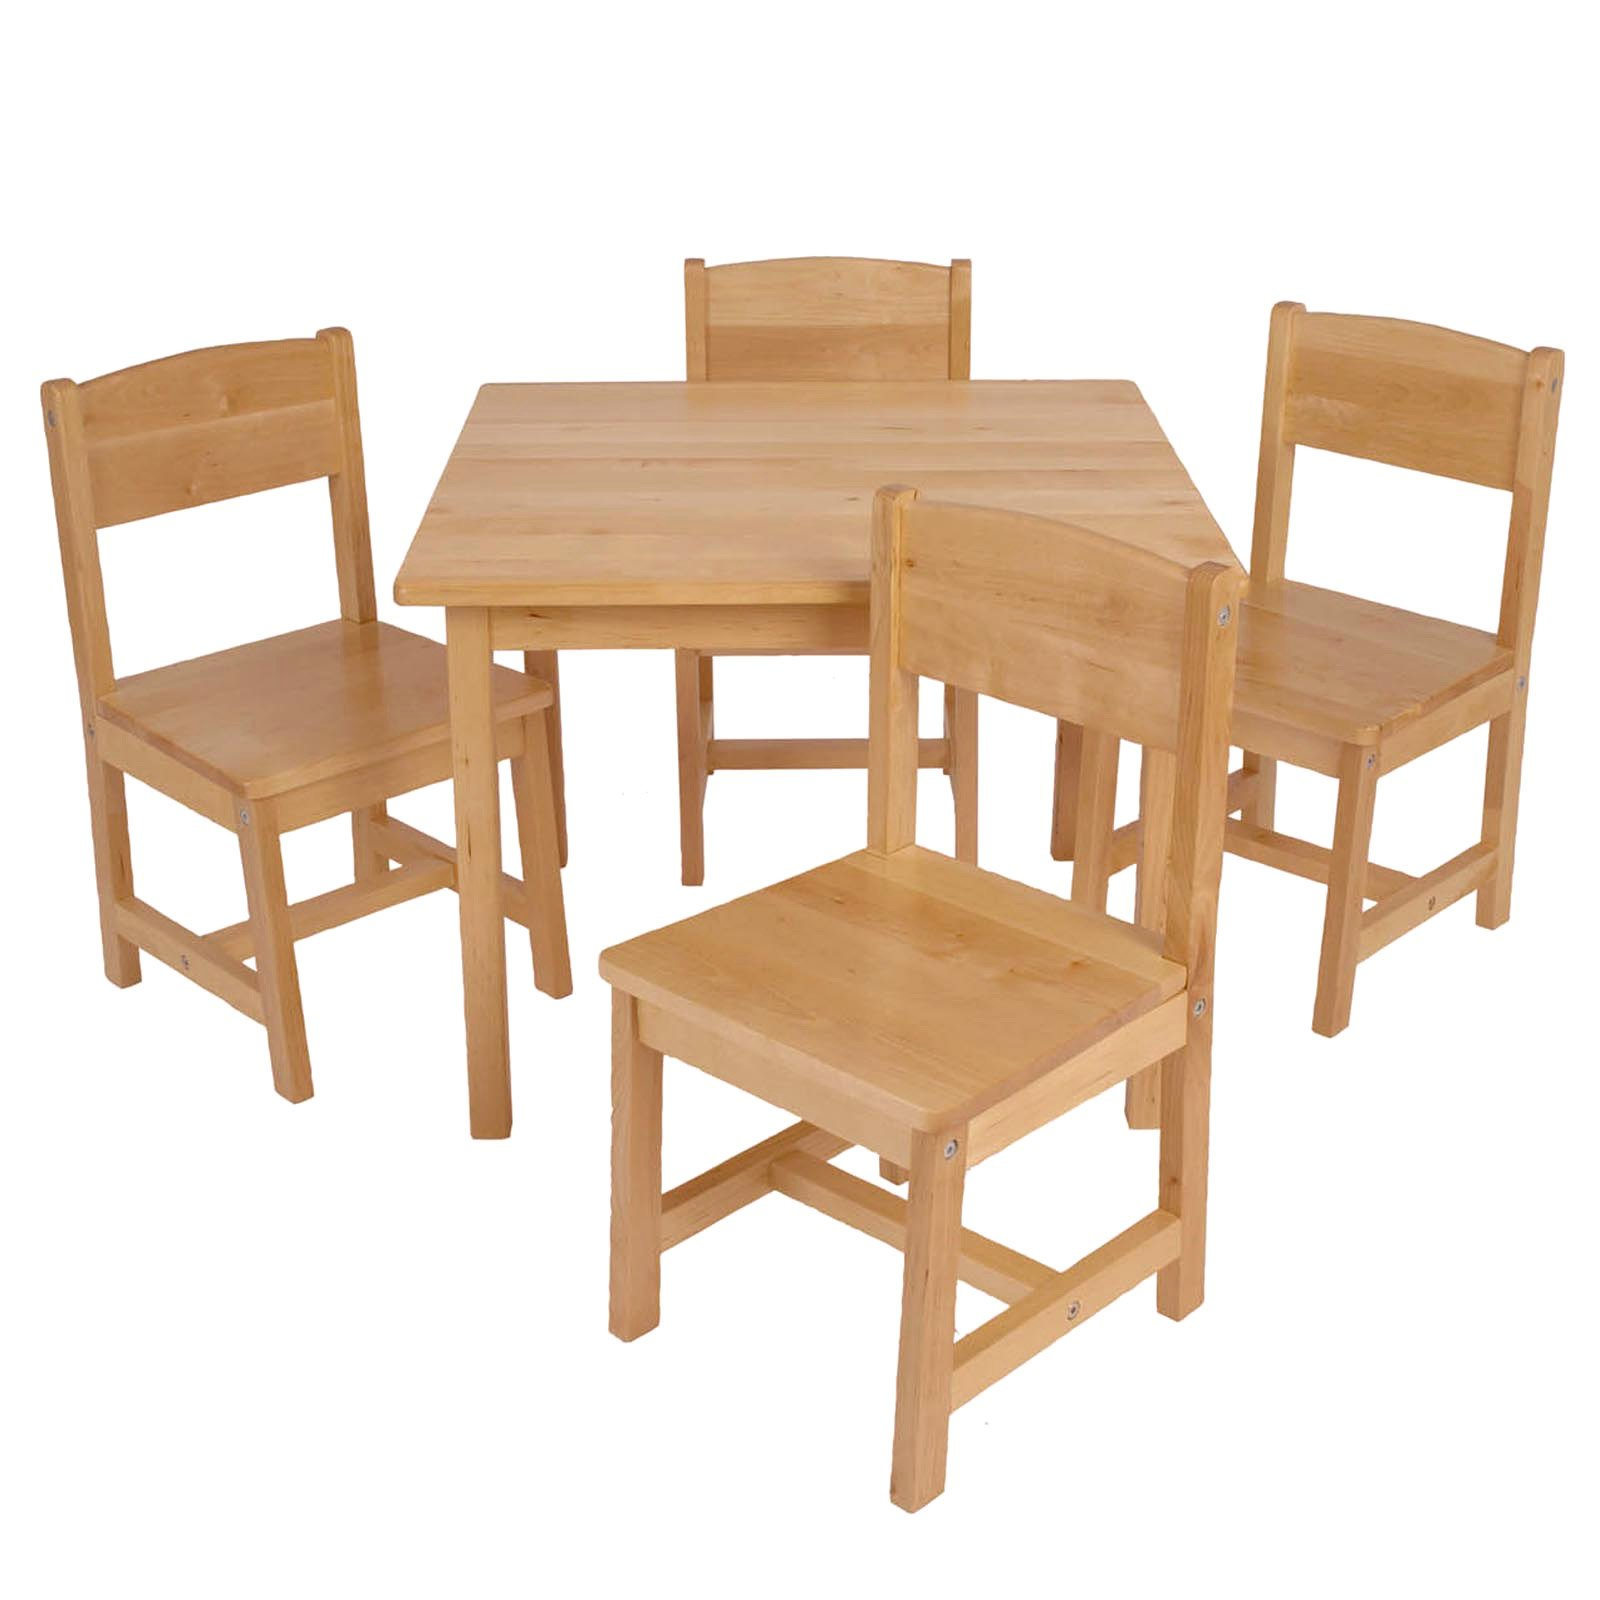 KidKraft Farmhouse Table and 4 Chairs Set Multiple Colors